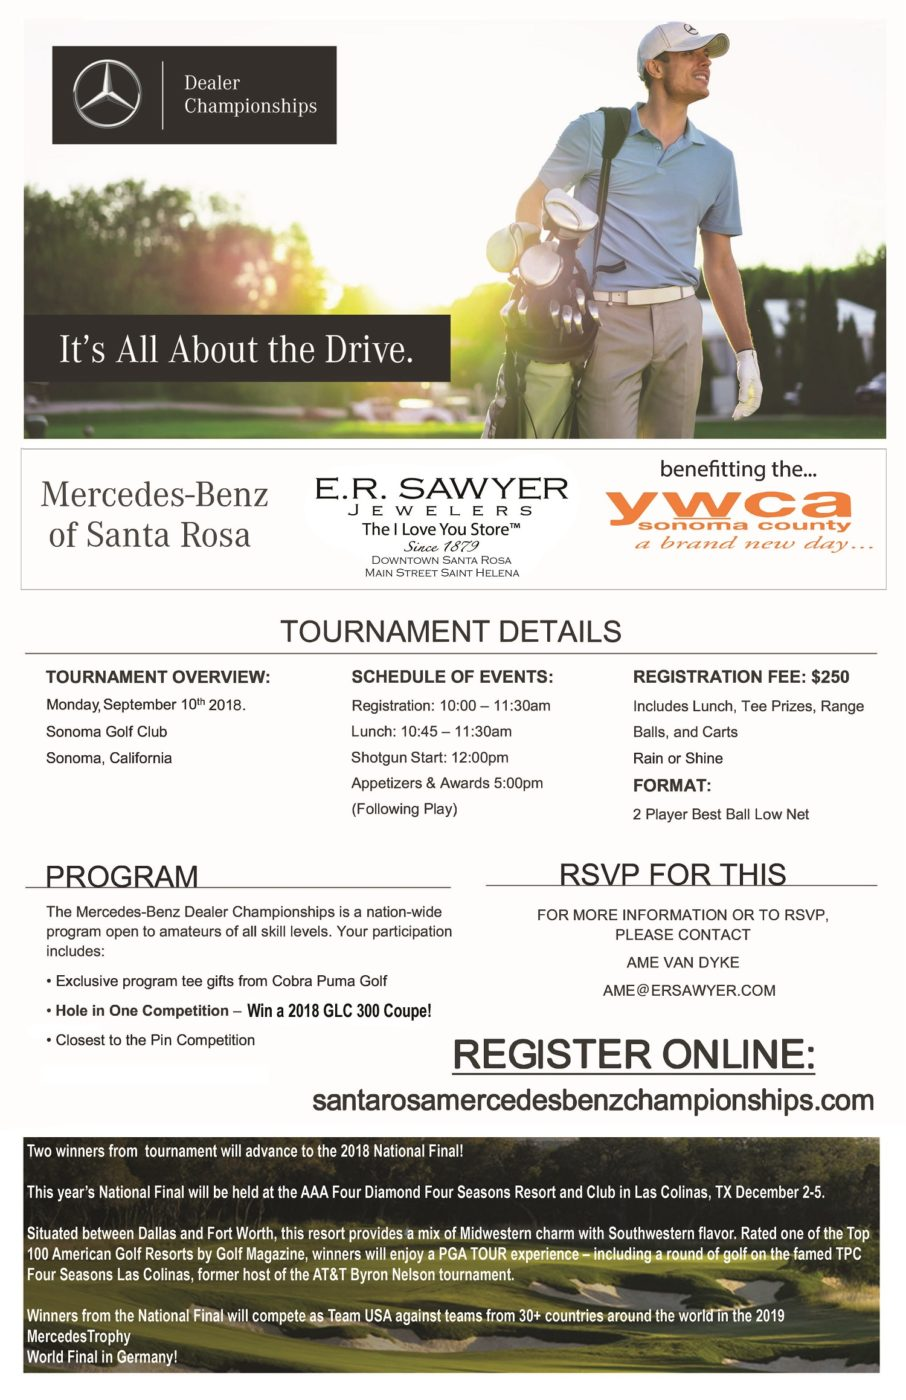 Mercedes-Benz Golf Tournament @ Sonoma Golf Club